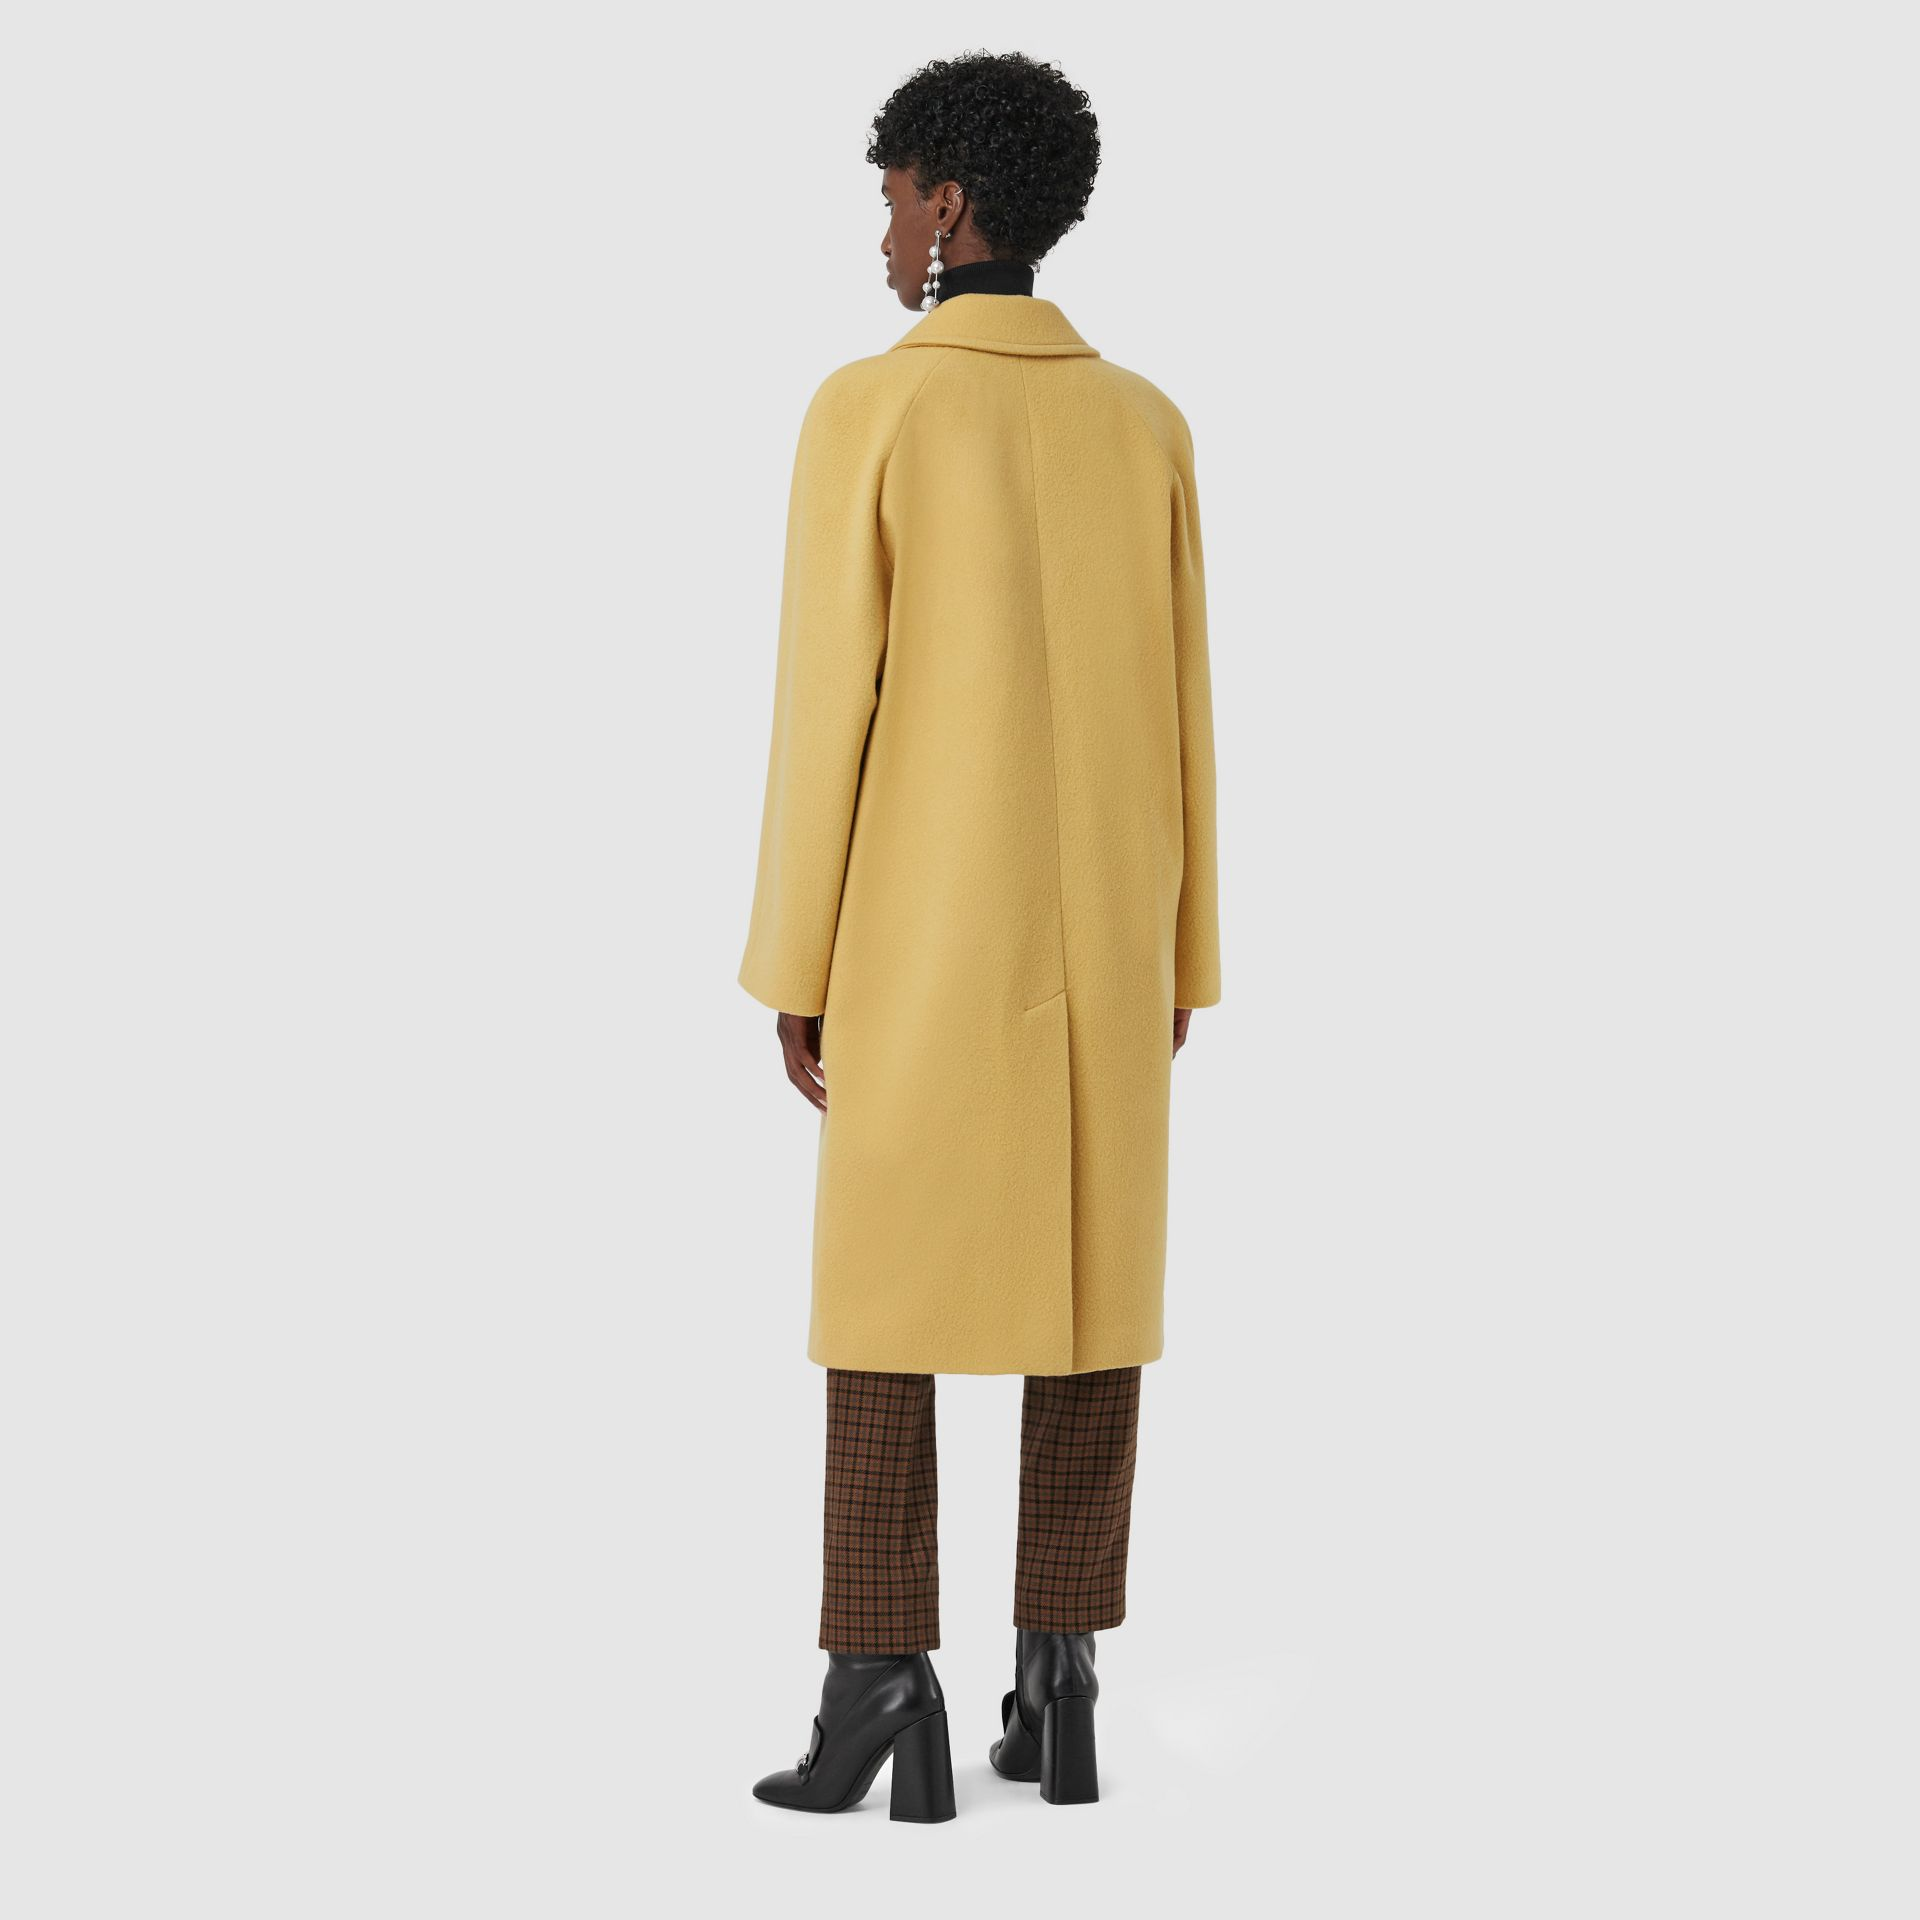 Wool Blend Tailored Coat in Camomile - Women | Burberry - gallery image 1